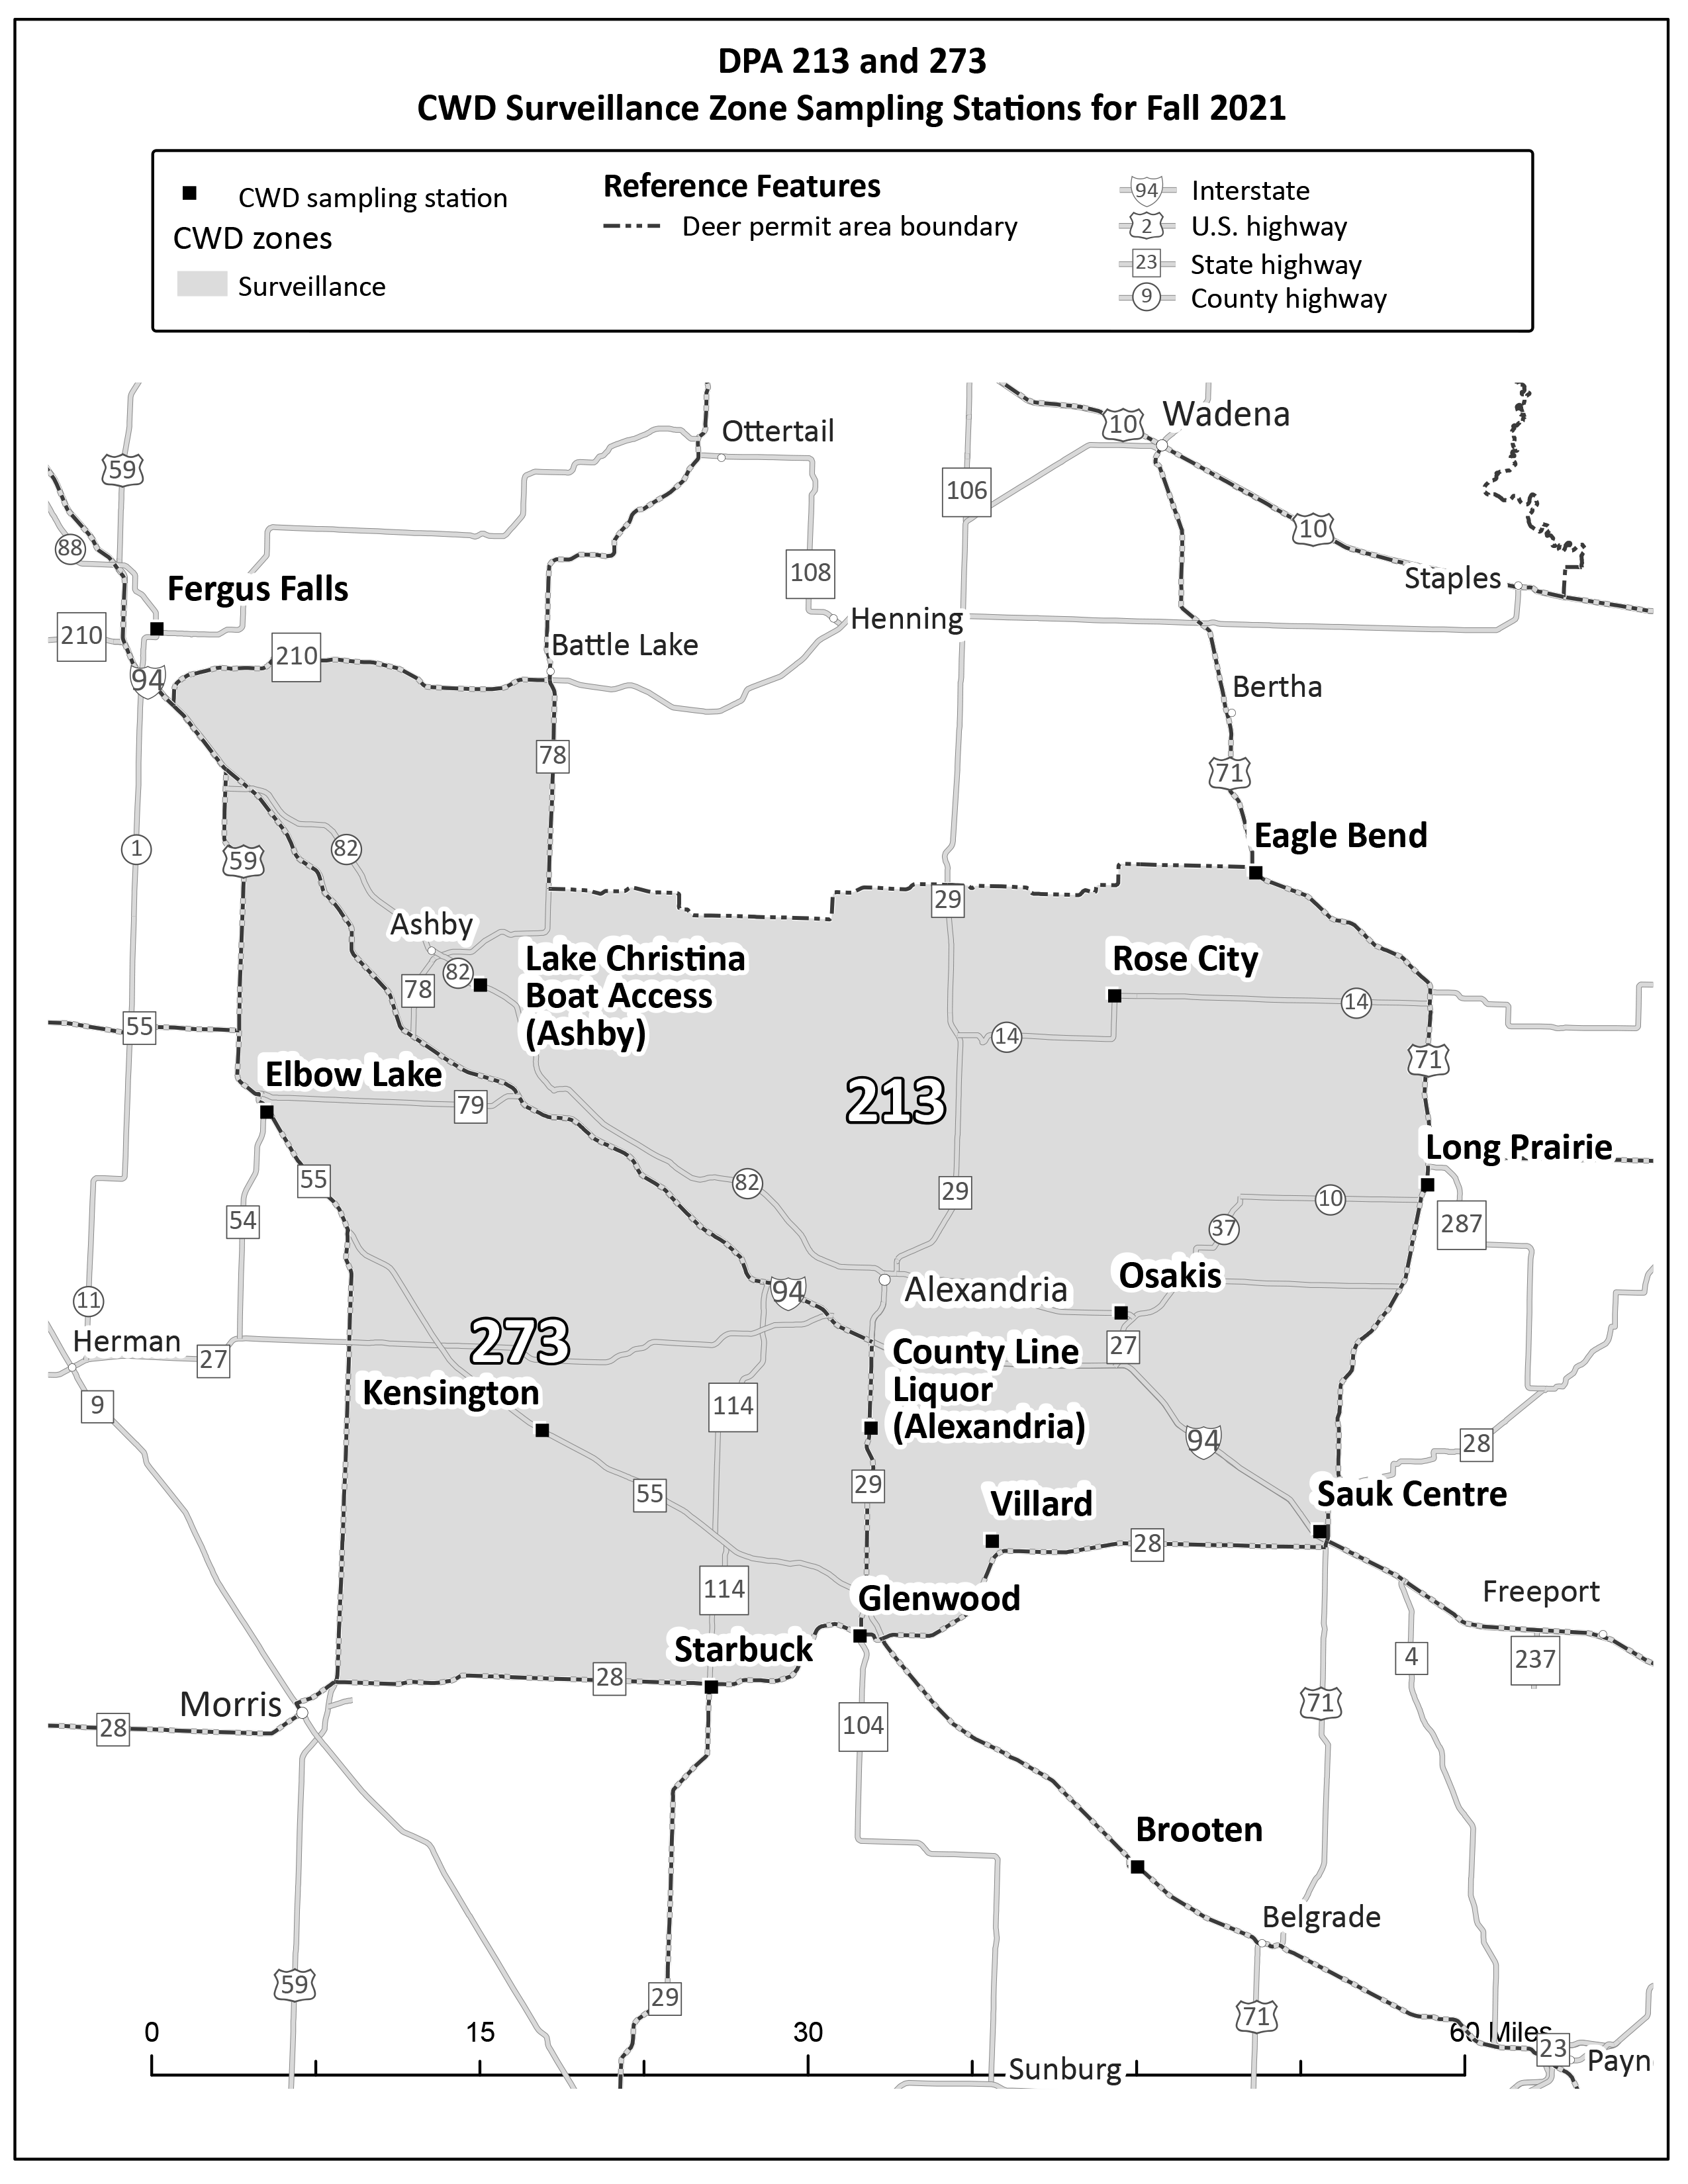 Map showing one section of the DPAs included in the CWD surveillance zone (DPAs 213, 273) and the sampling stations.